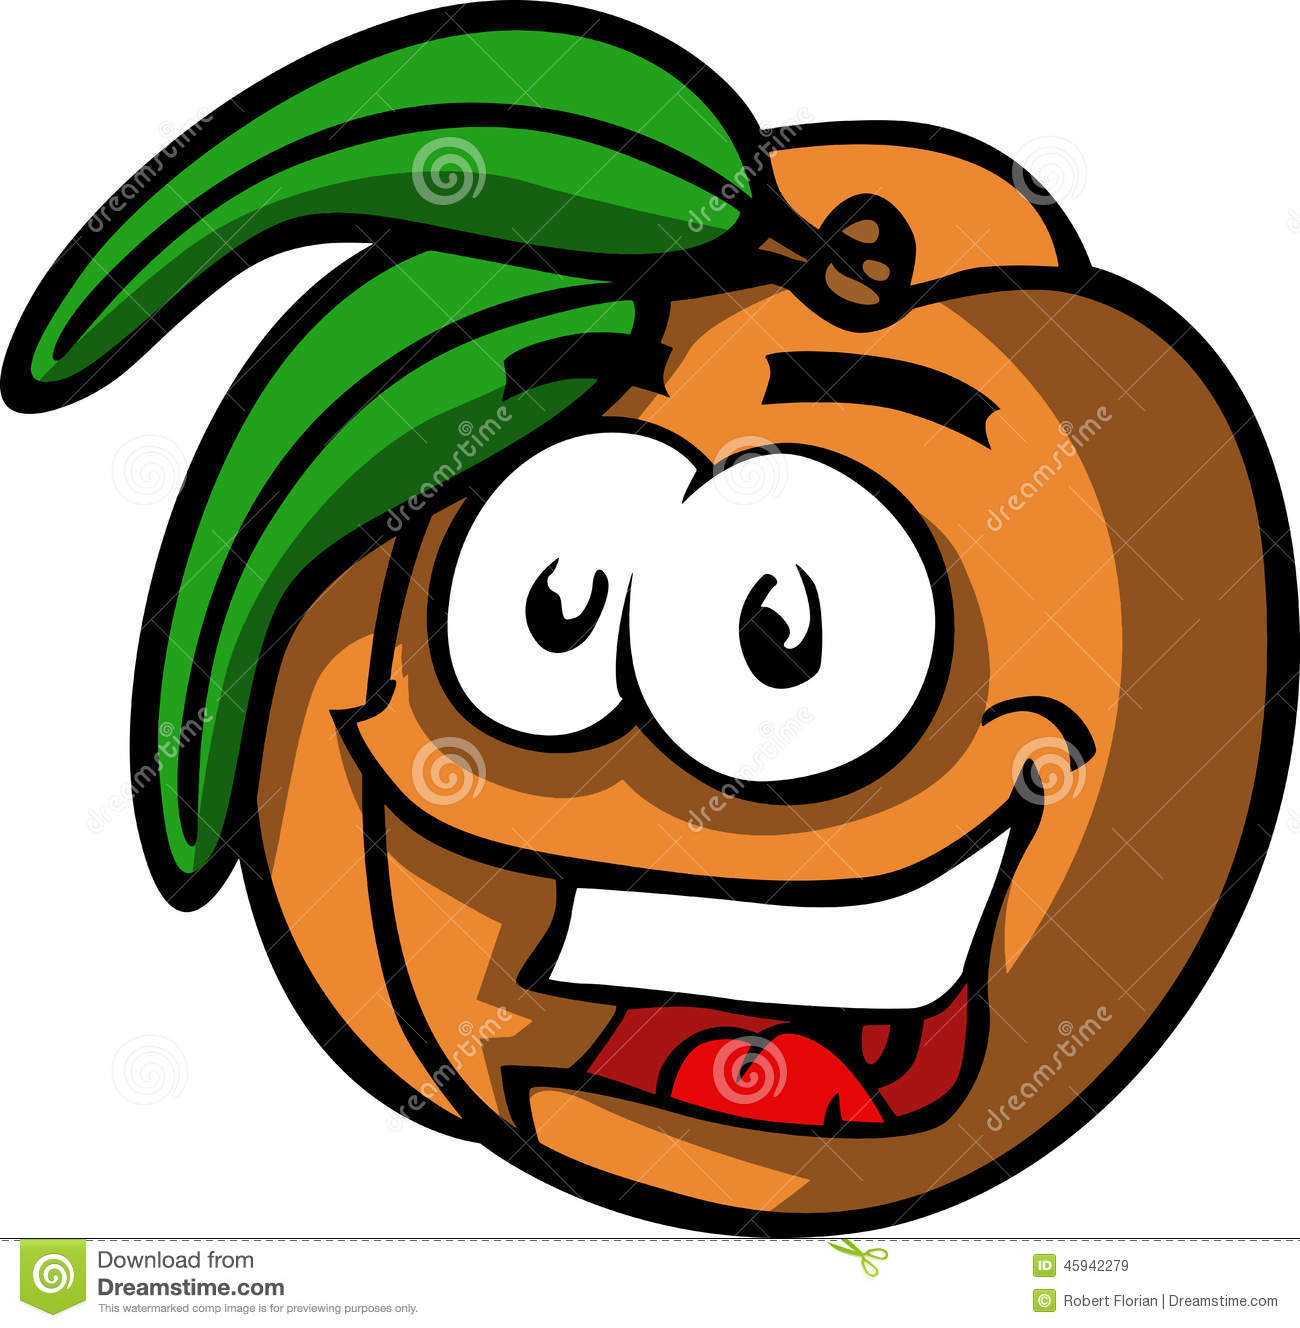 Smiling Peach Stock Vector - Image: 45942279